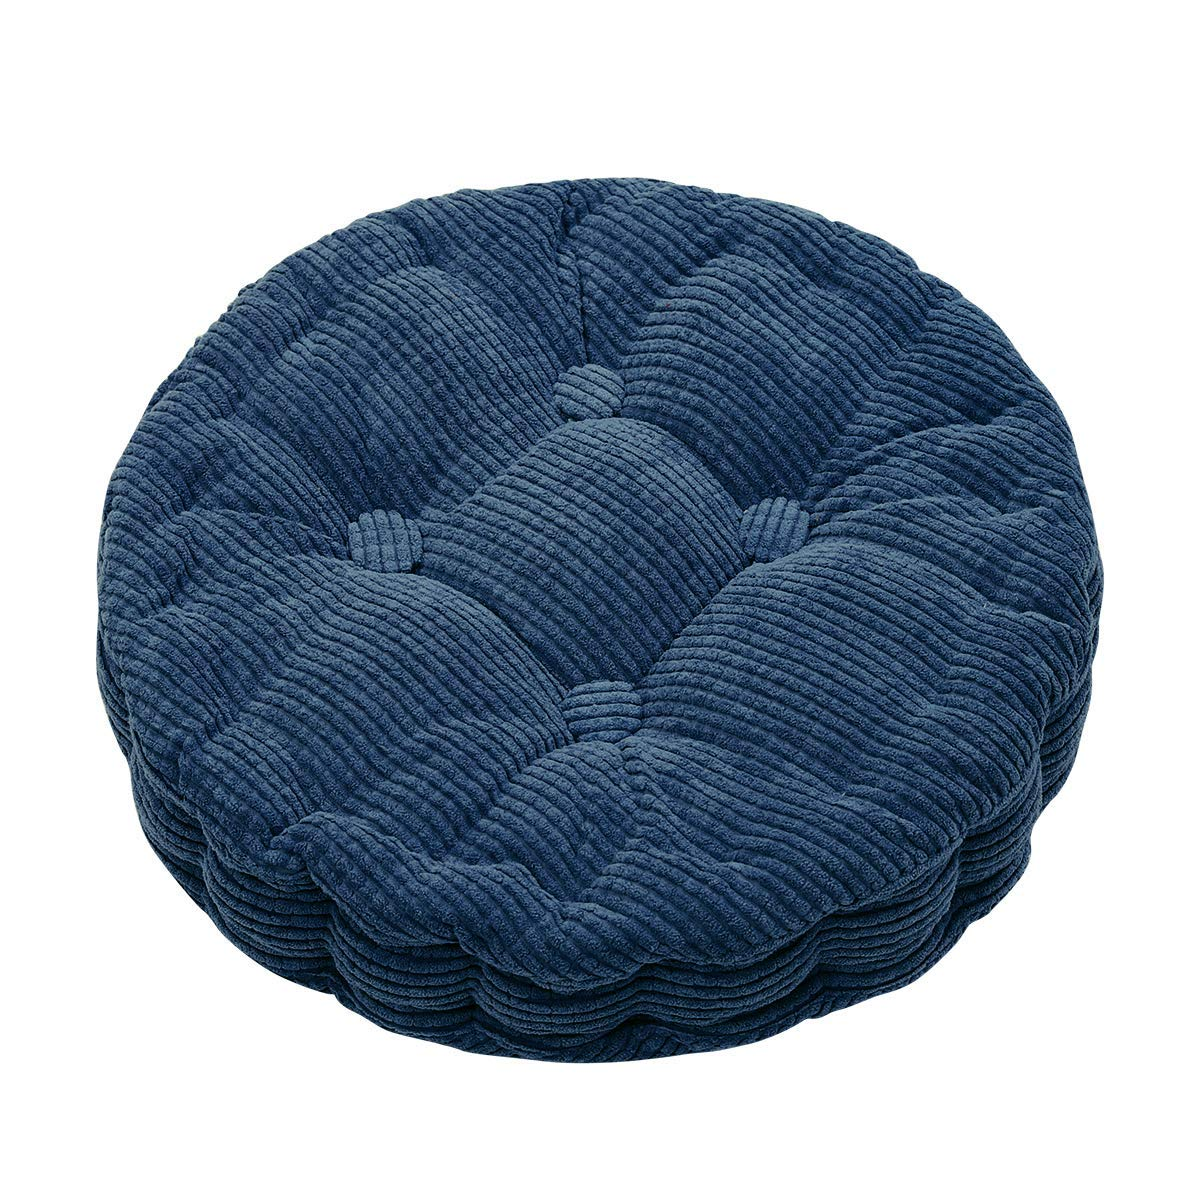 Picture of: Outdoor Round Seat Cushions Epe Cotton Filled Boosted Cushion Indoor Chair Cushions For Home Office Kitchen Diameter17 72 Inch